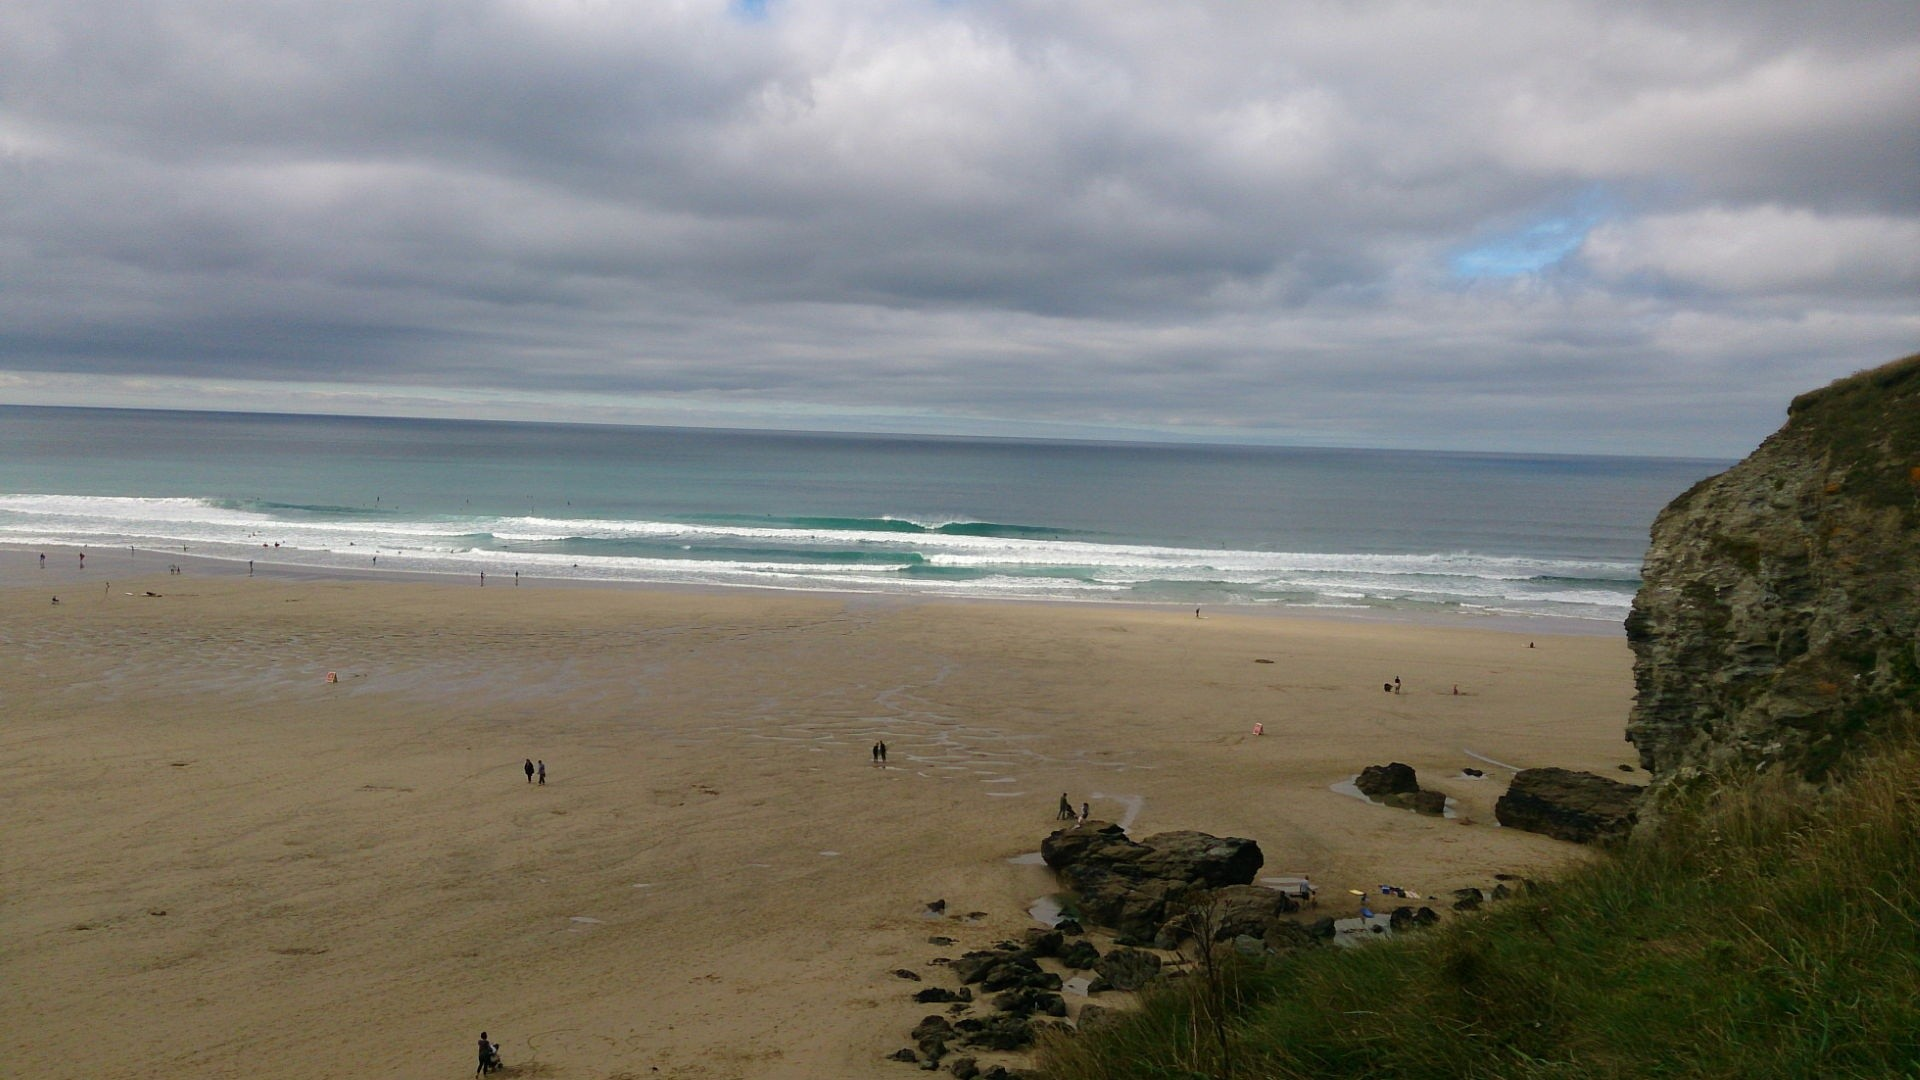 rory foster's photo of Porthtowan